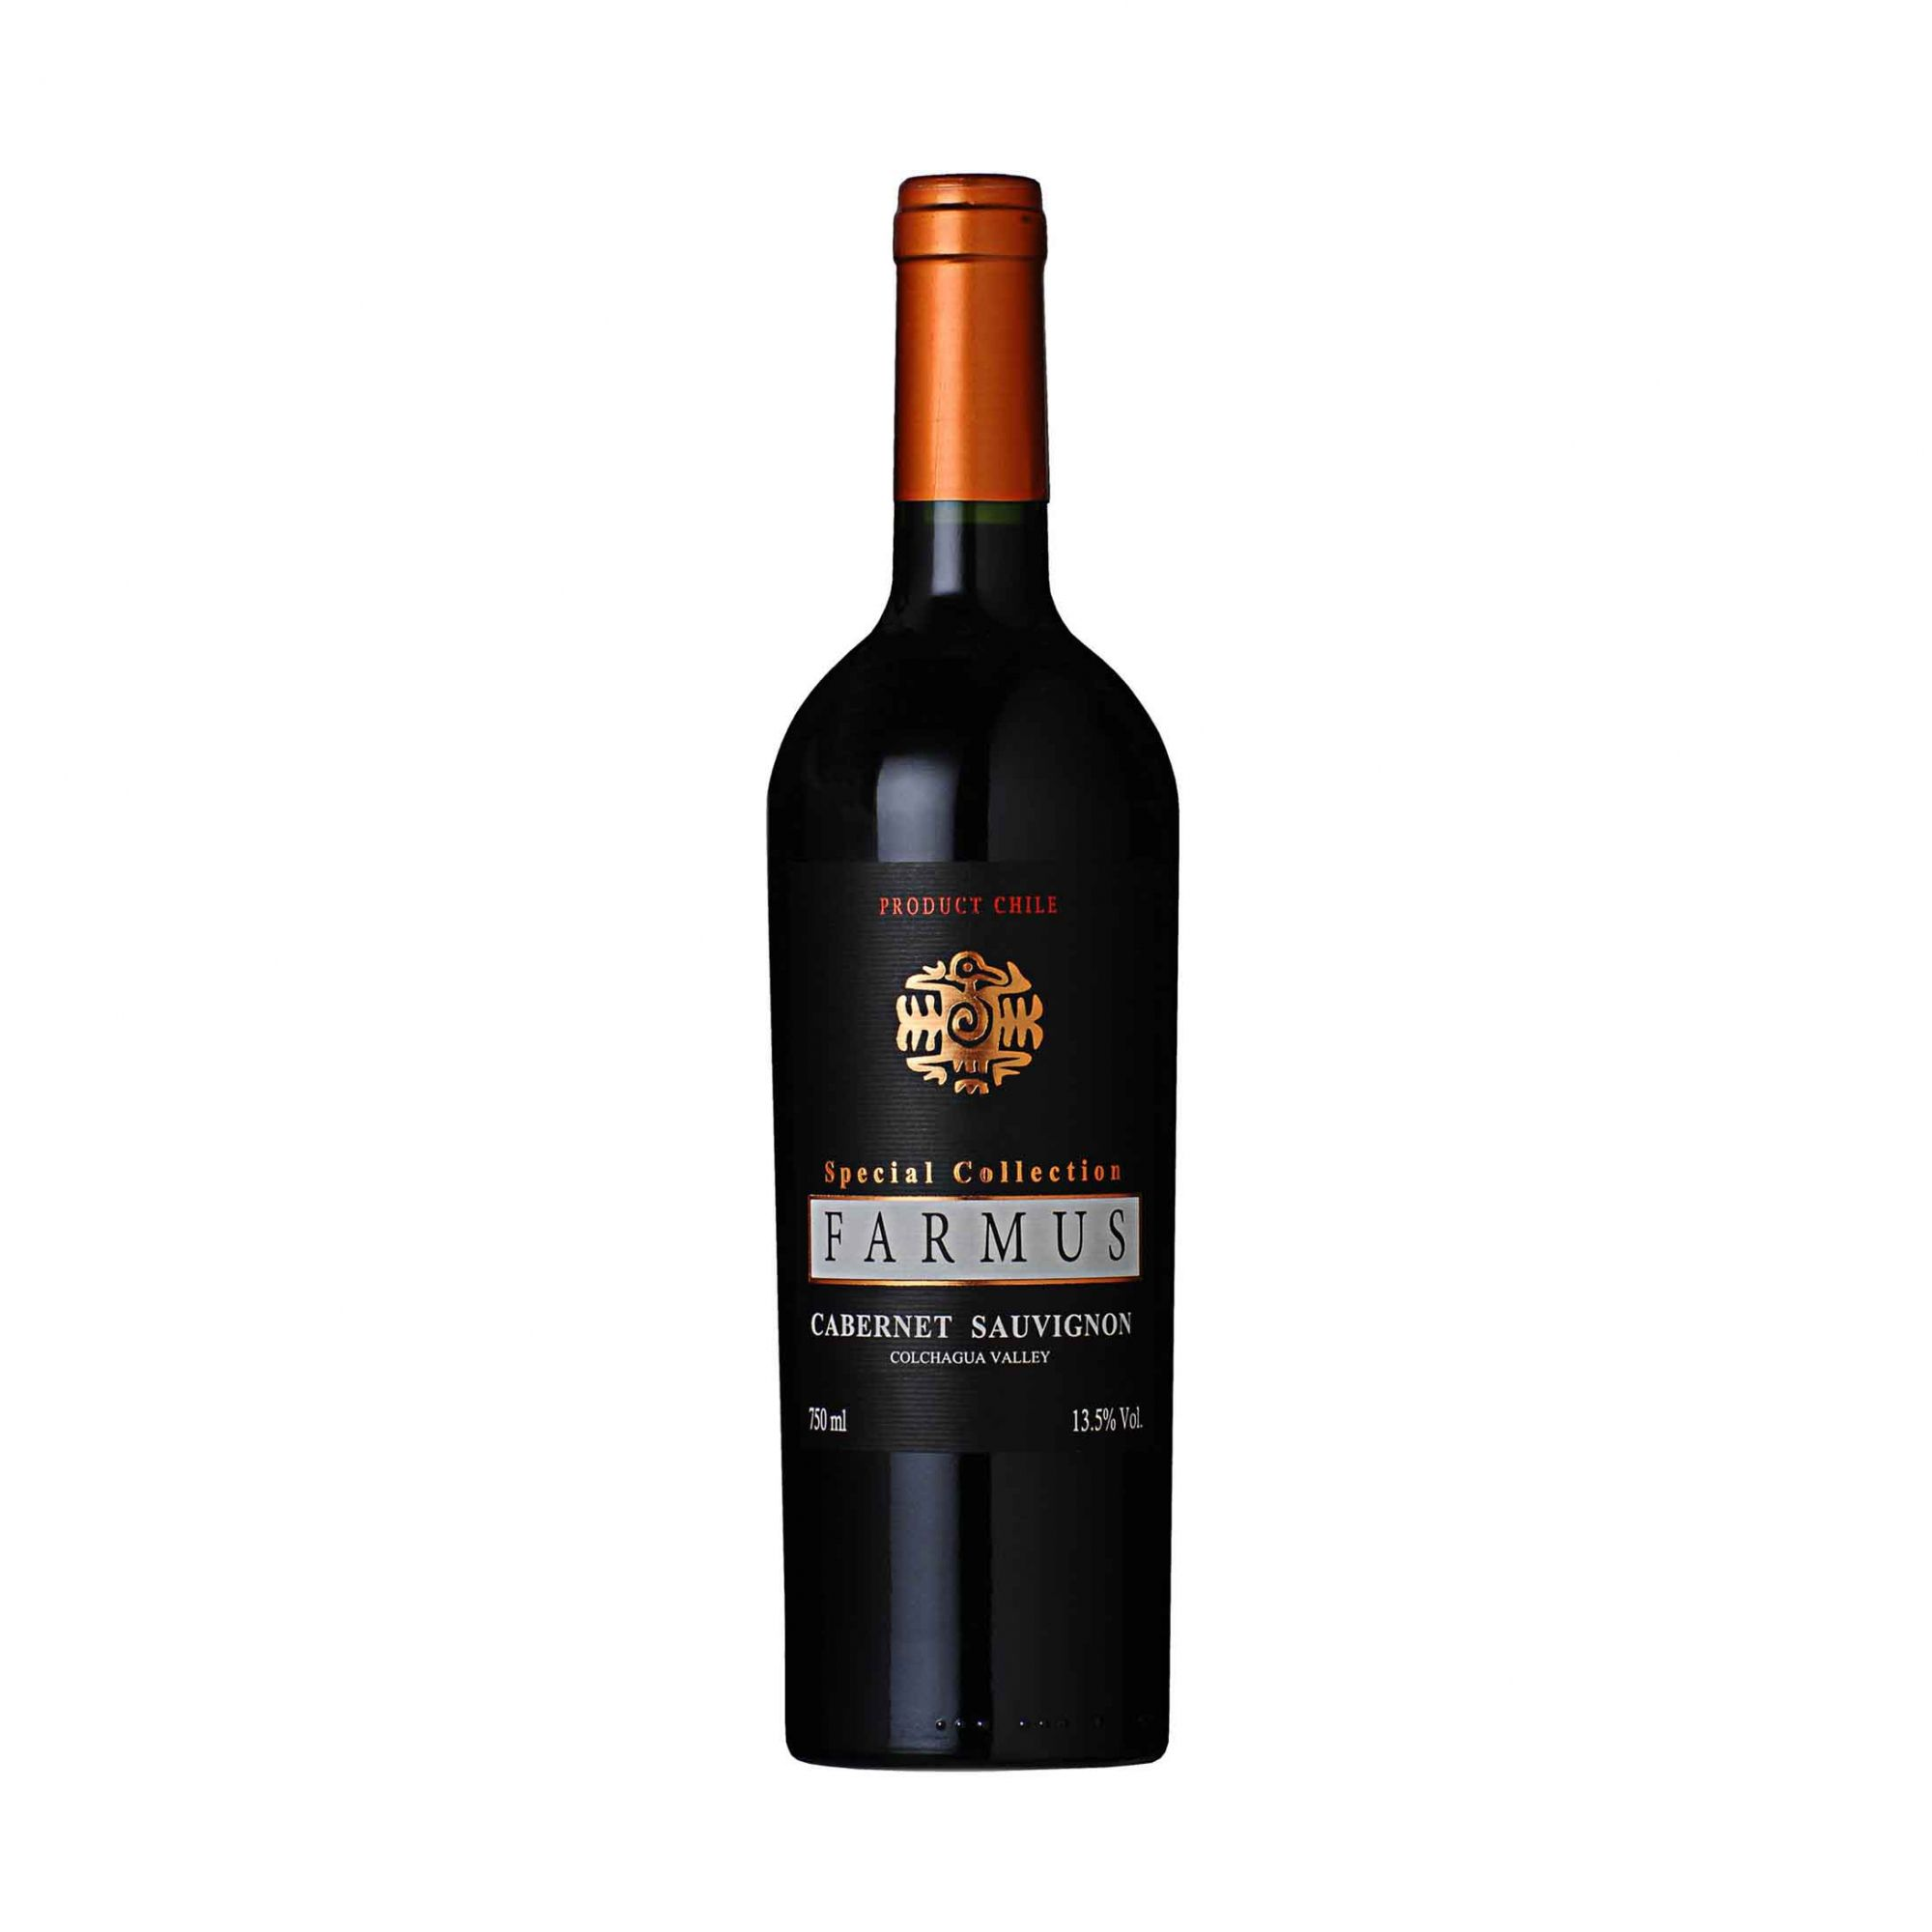 Farmus Reserva SP Collect Cabernet Sauv